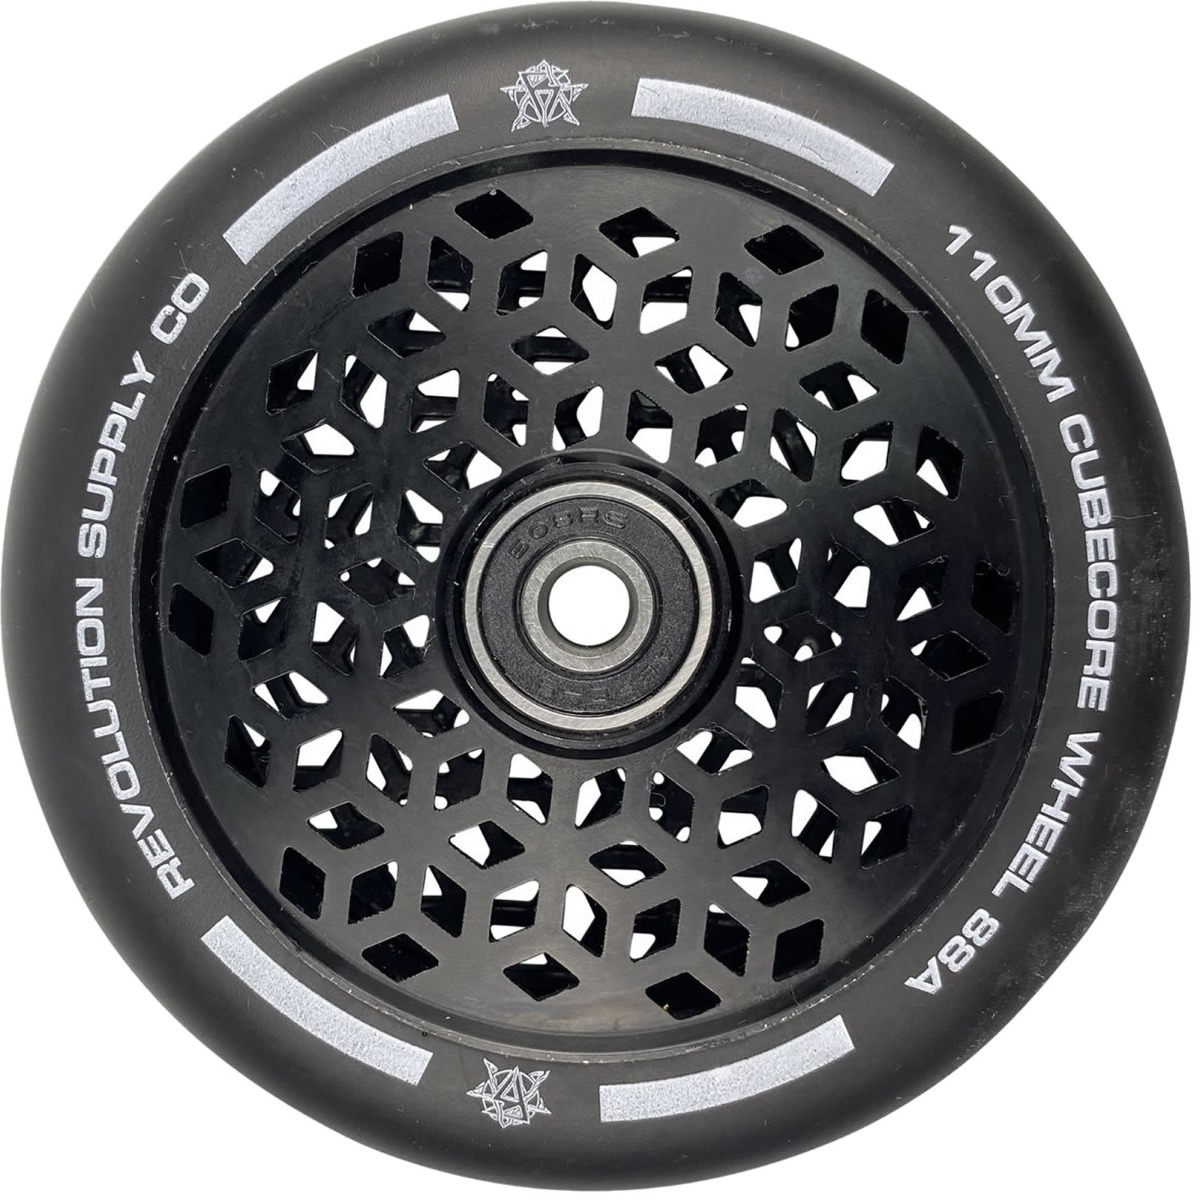 An image of Revolution Supply Cubed Core Ultralite 110mm Scooter Wheel - Black / Black